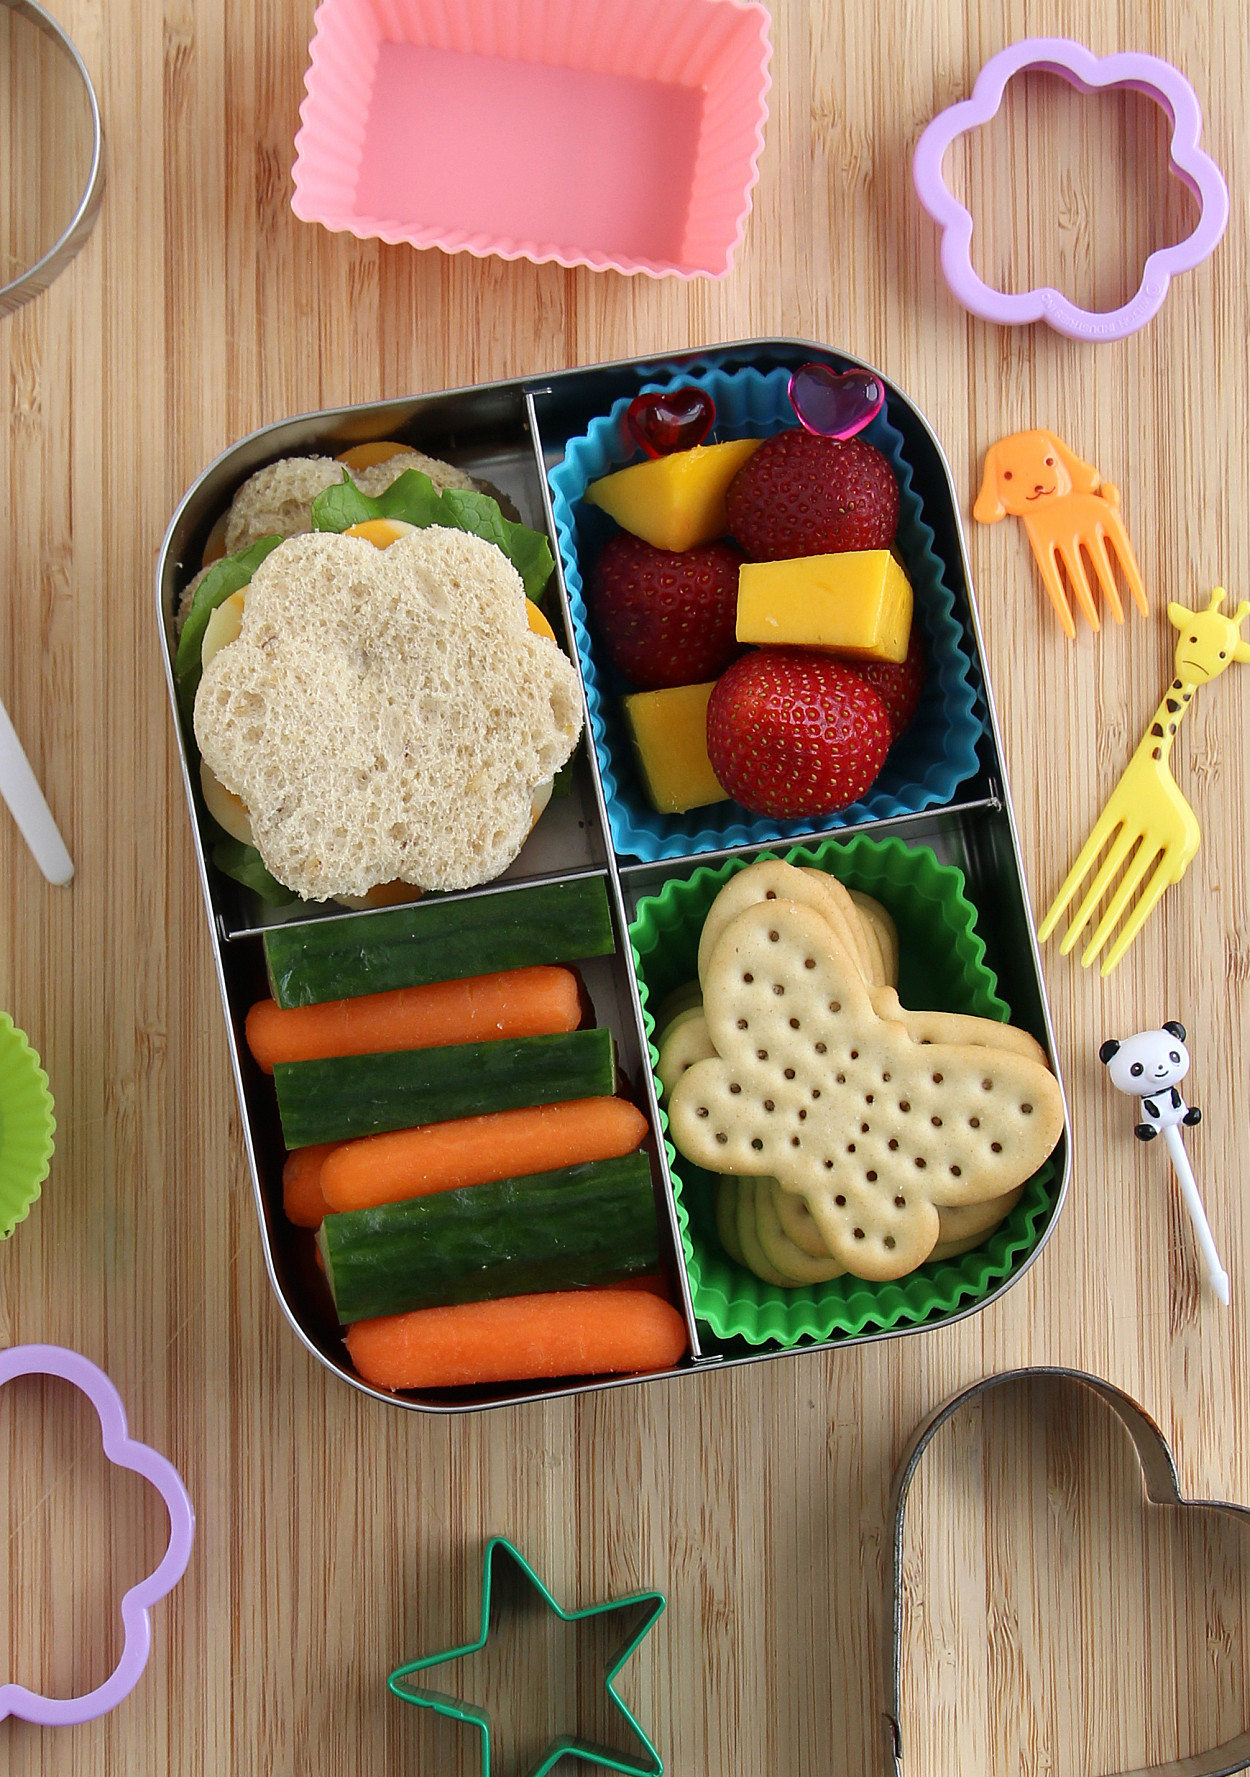 How To Make Fabulous And Fun Bento Box Lunches For Your